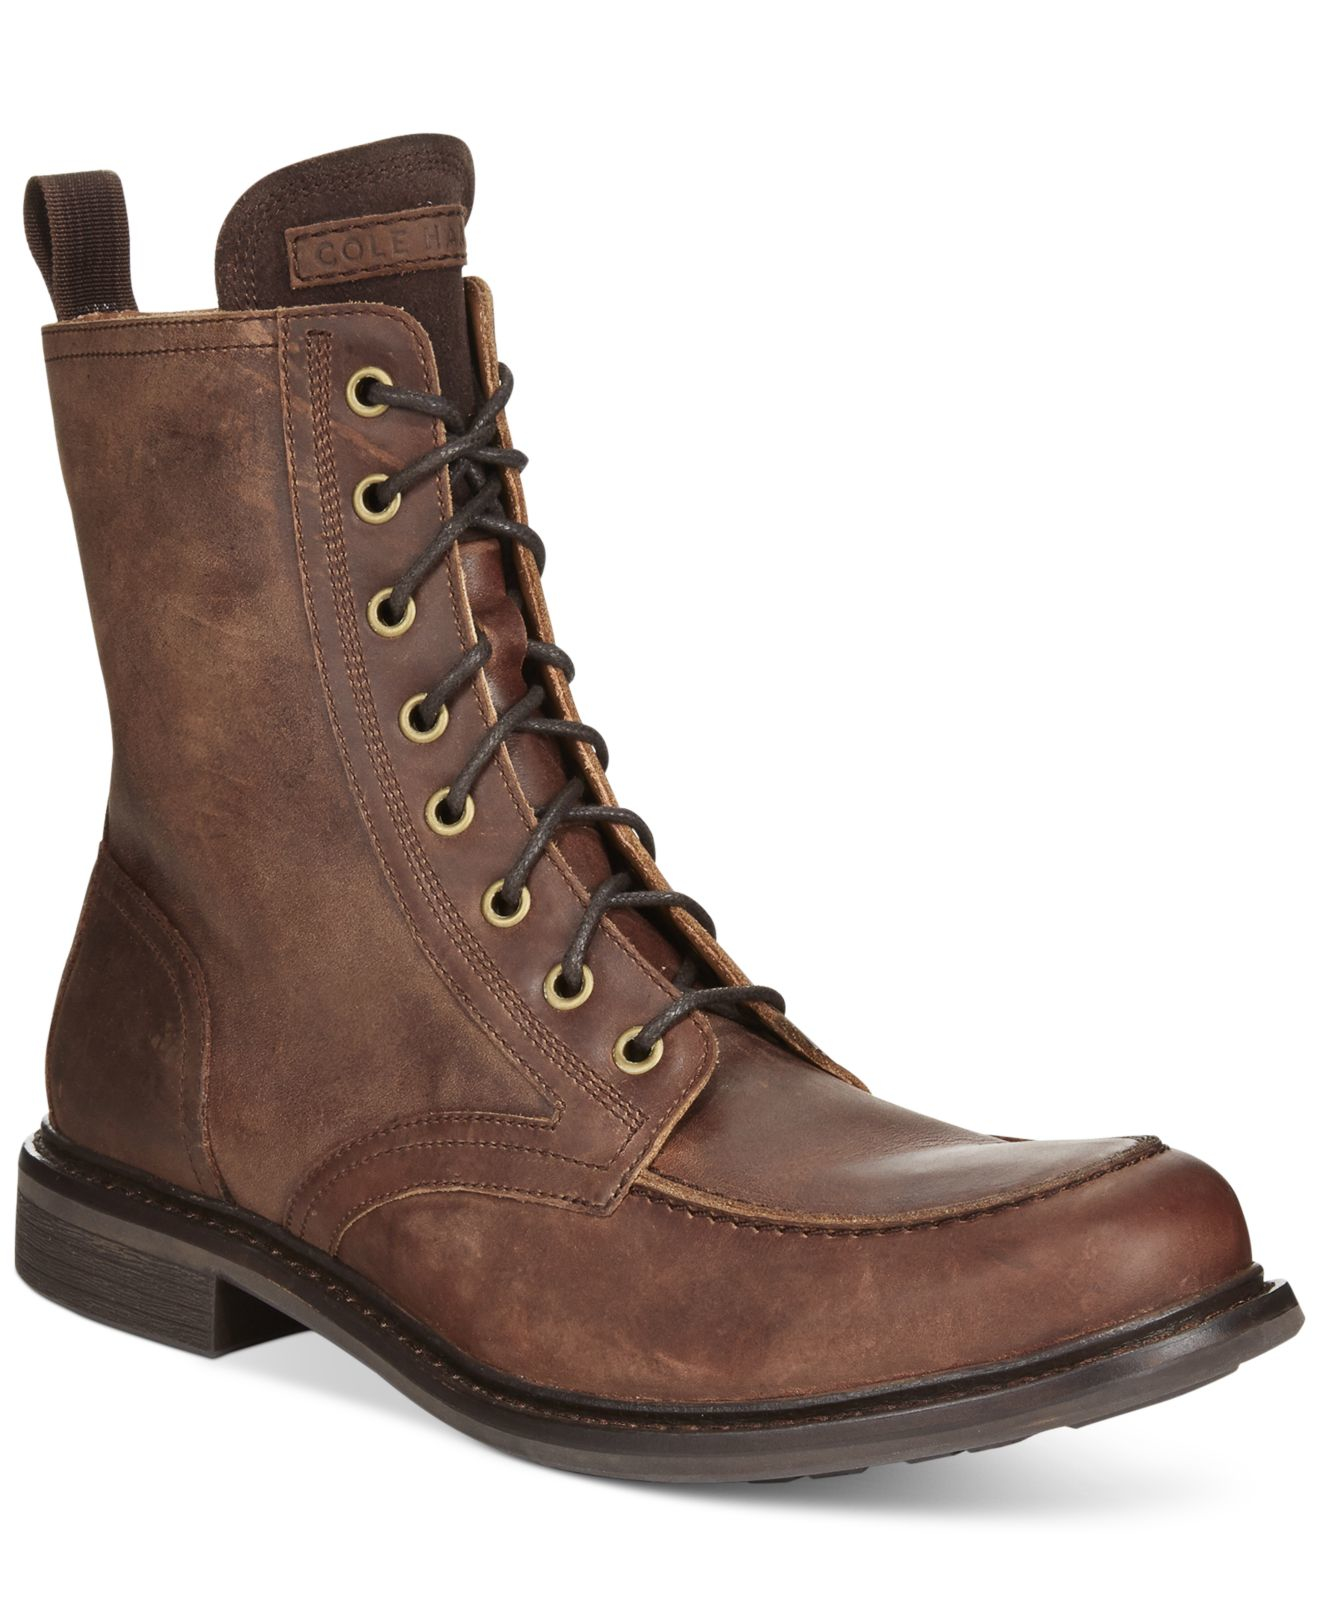 cole haan bryce moc toe boot in brown for lyst